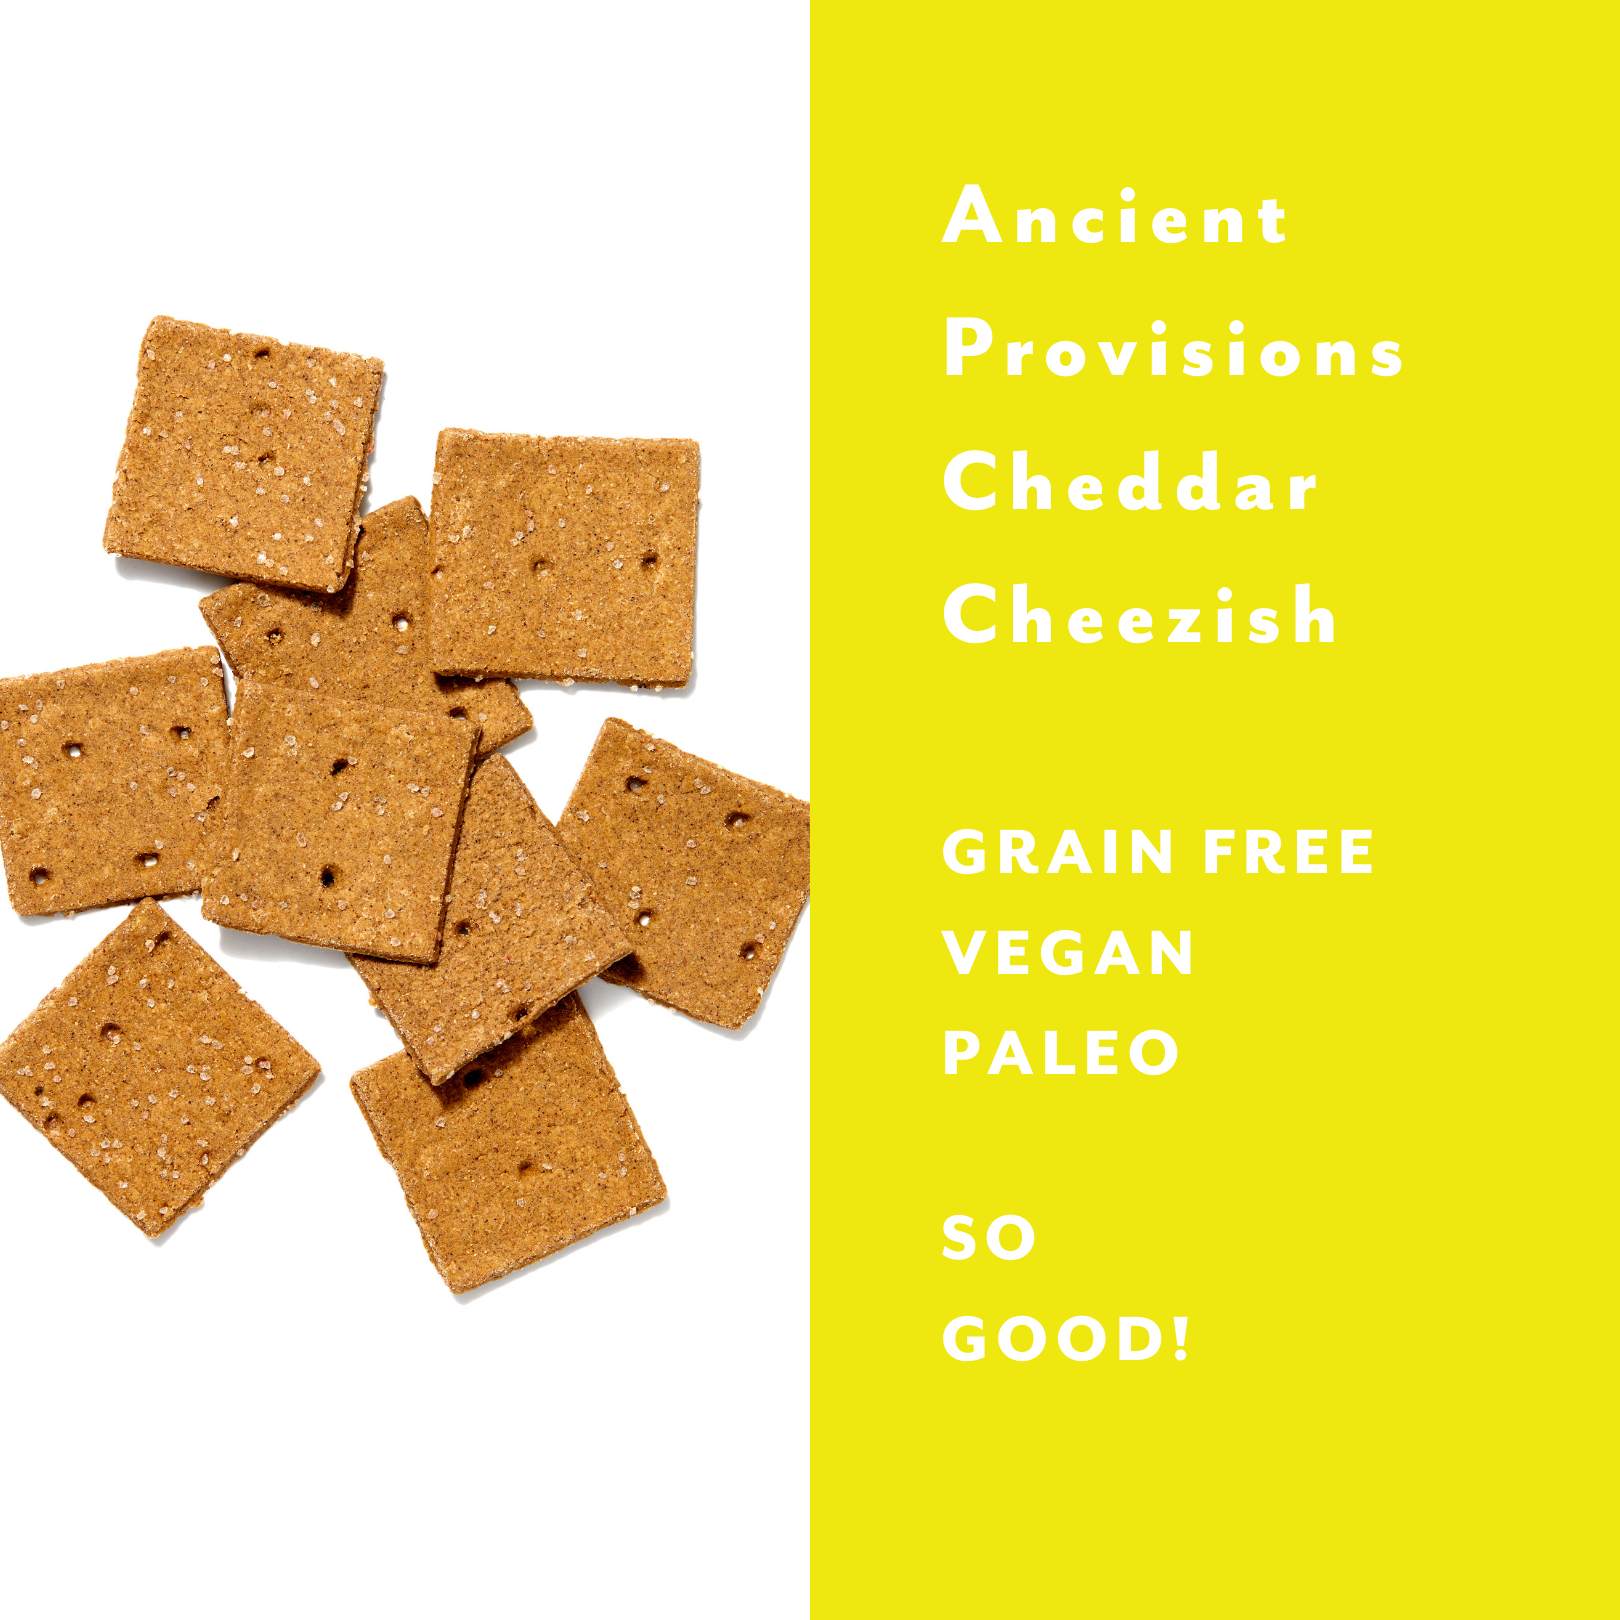 Ancient Provisions Cheddar Cheezish Crackers